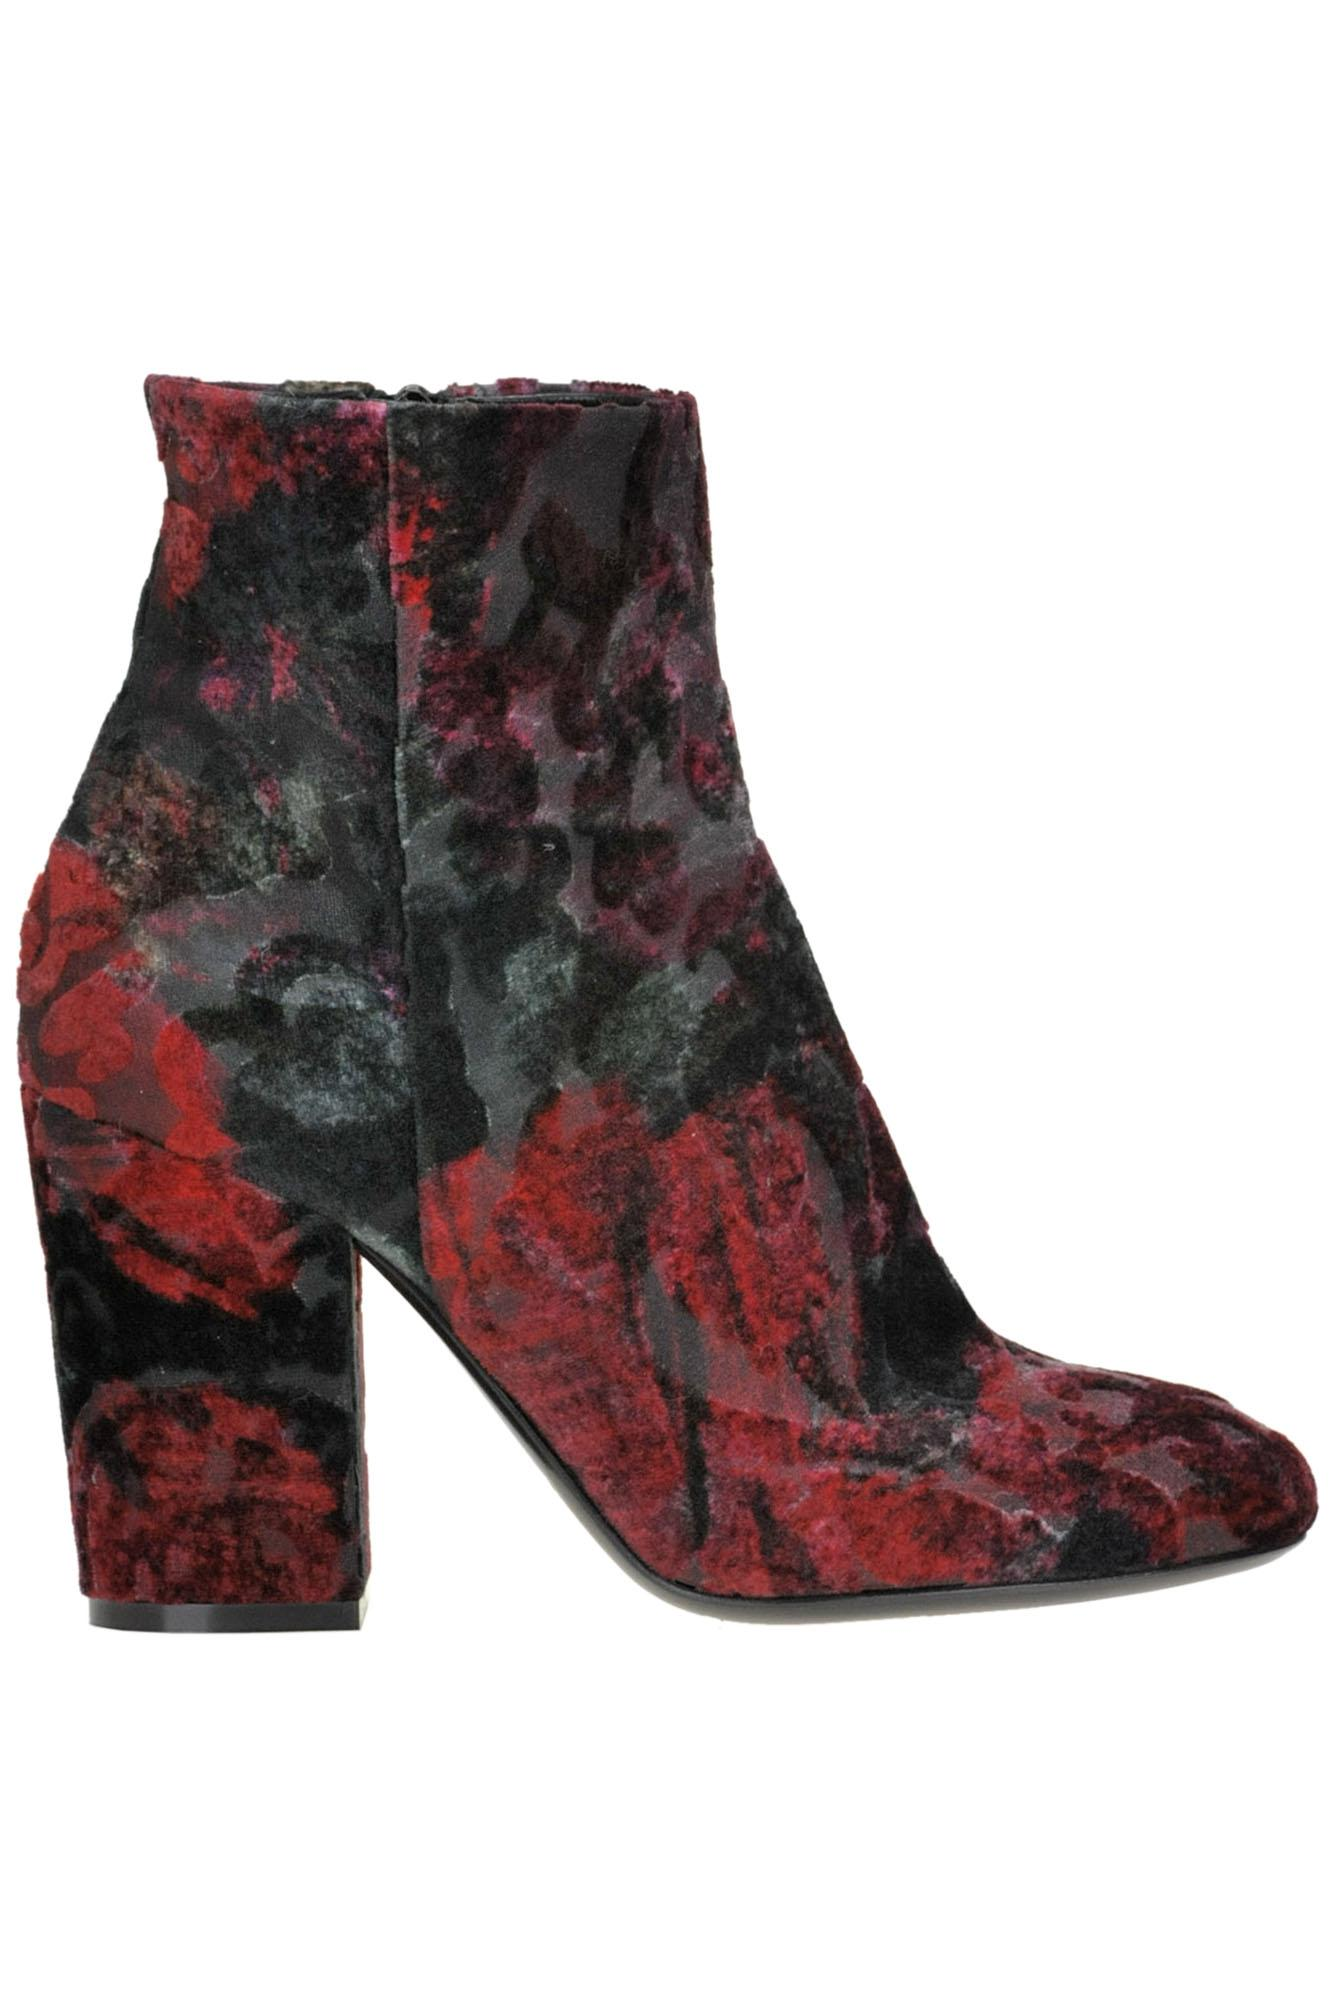 6f3308eff748d Strategia - Multicolor Embroidered Ankle-boots - Lyst. View fullscreen